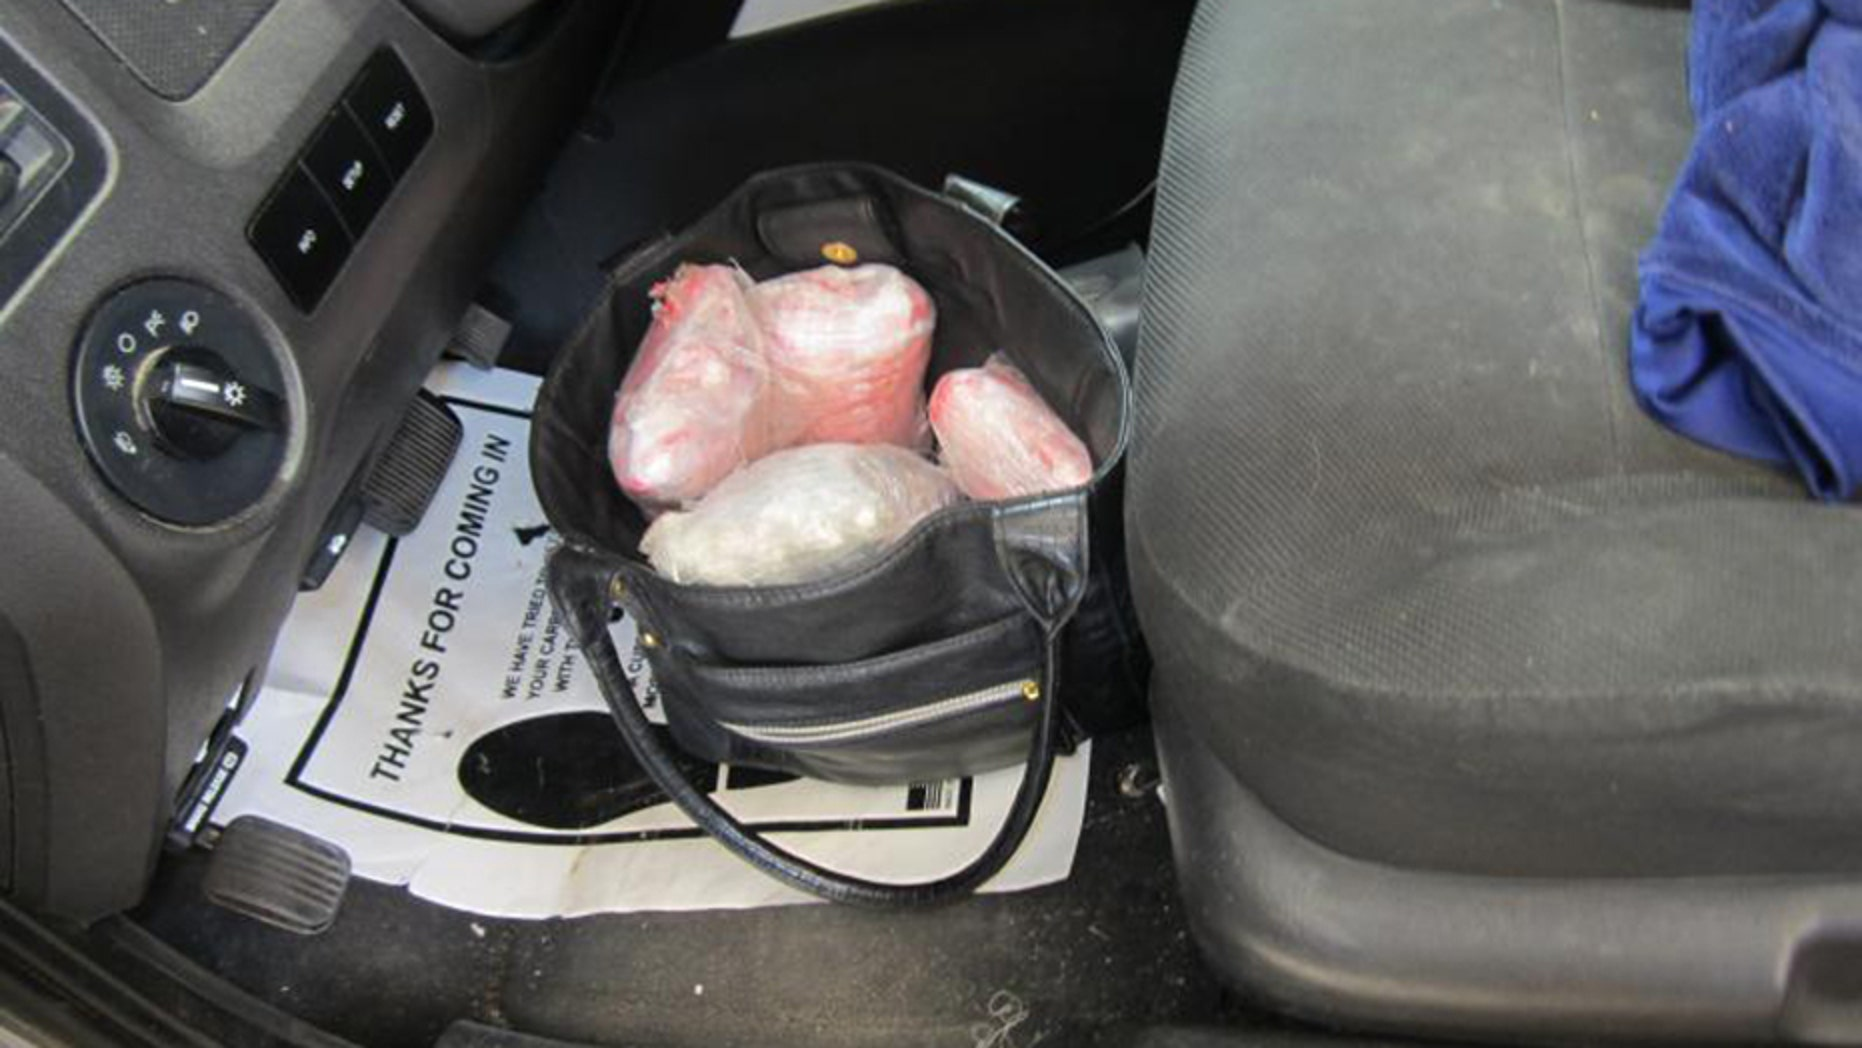 U.S. Customs and Border Protection agents arrested a U.S. citizen, 75, for attempting to smuggle 17 pounds of heroin across the border.